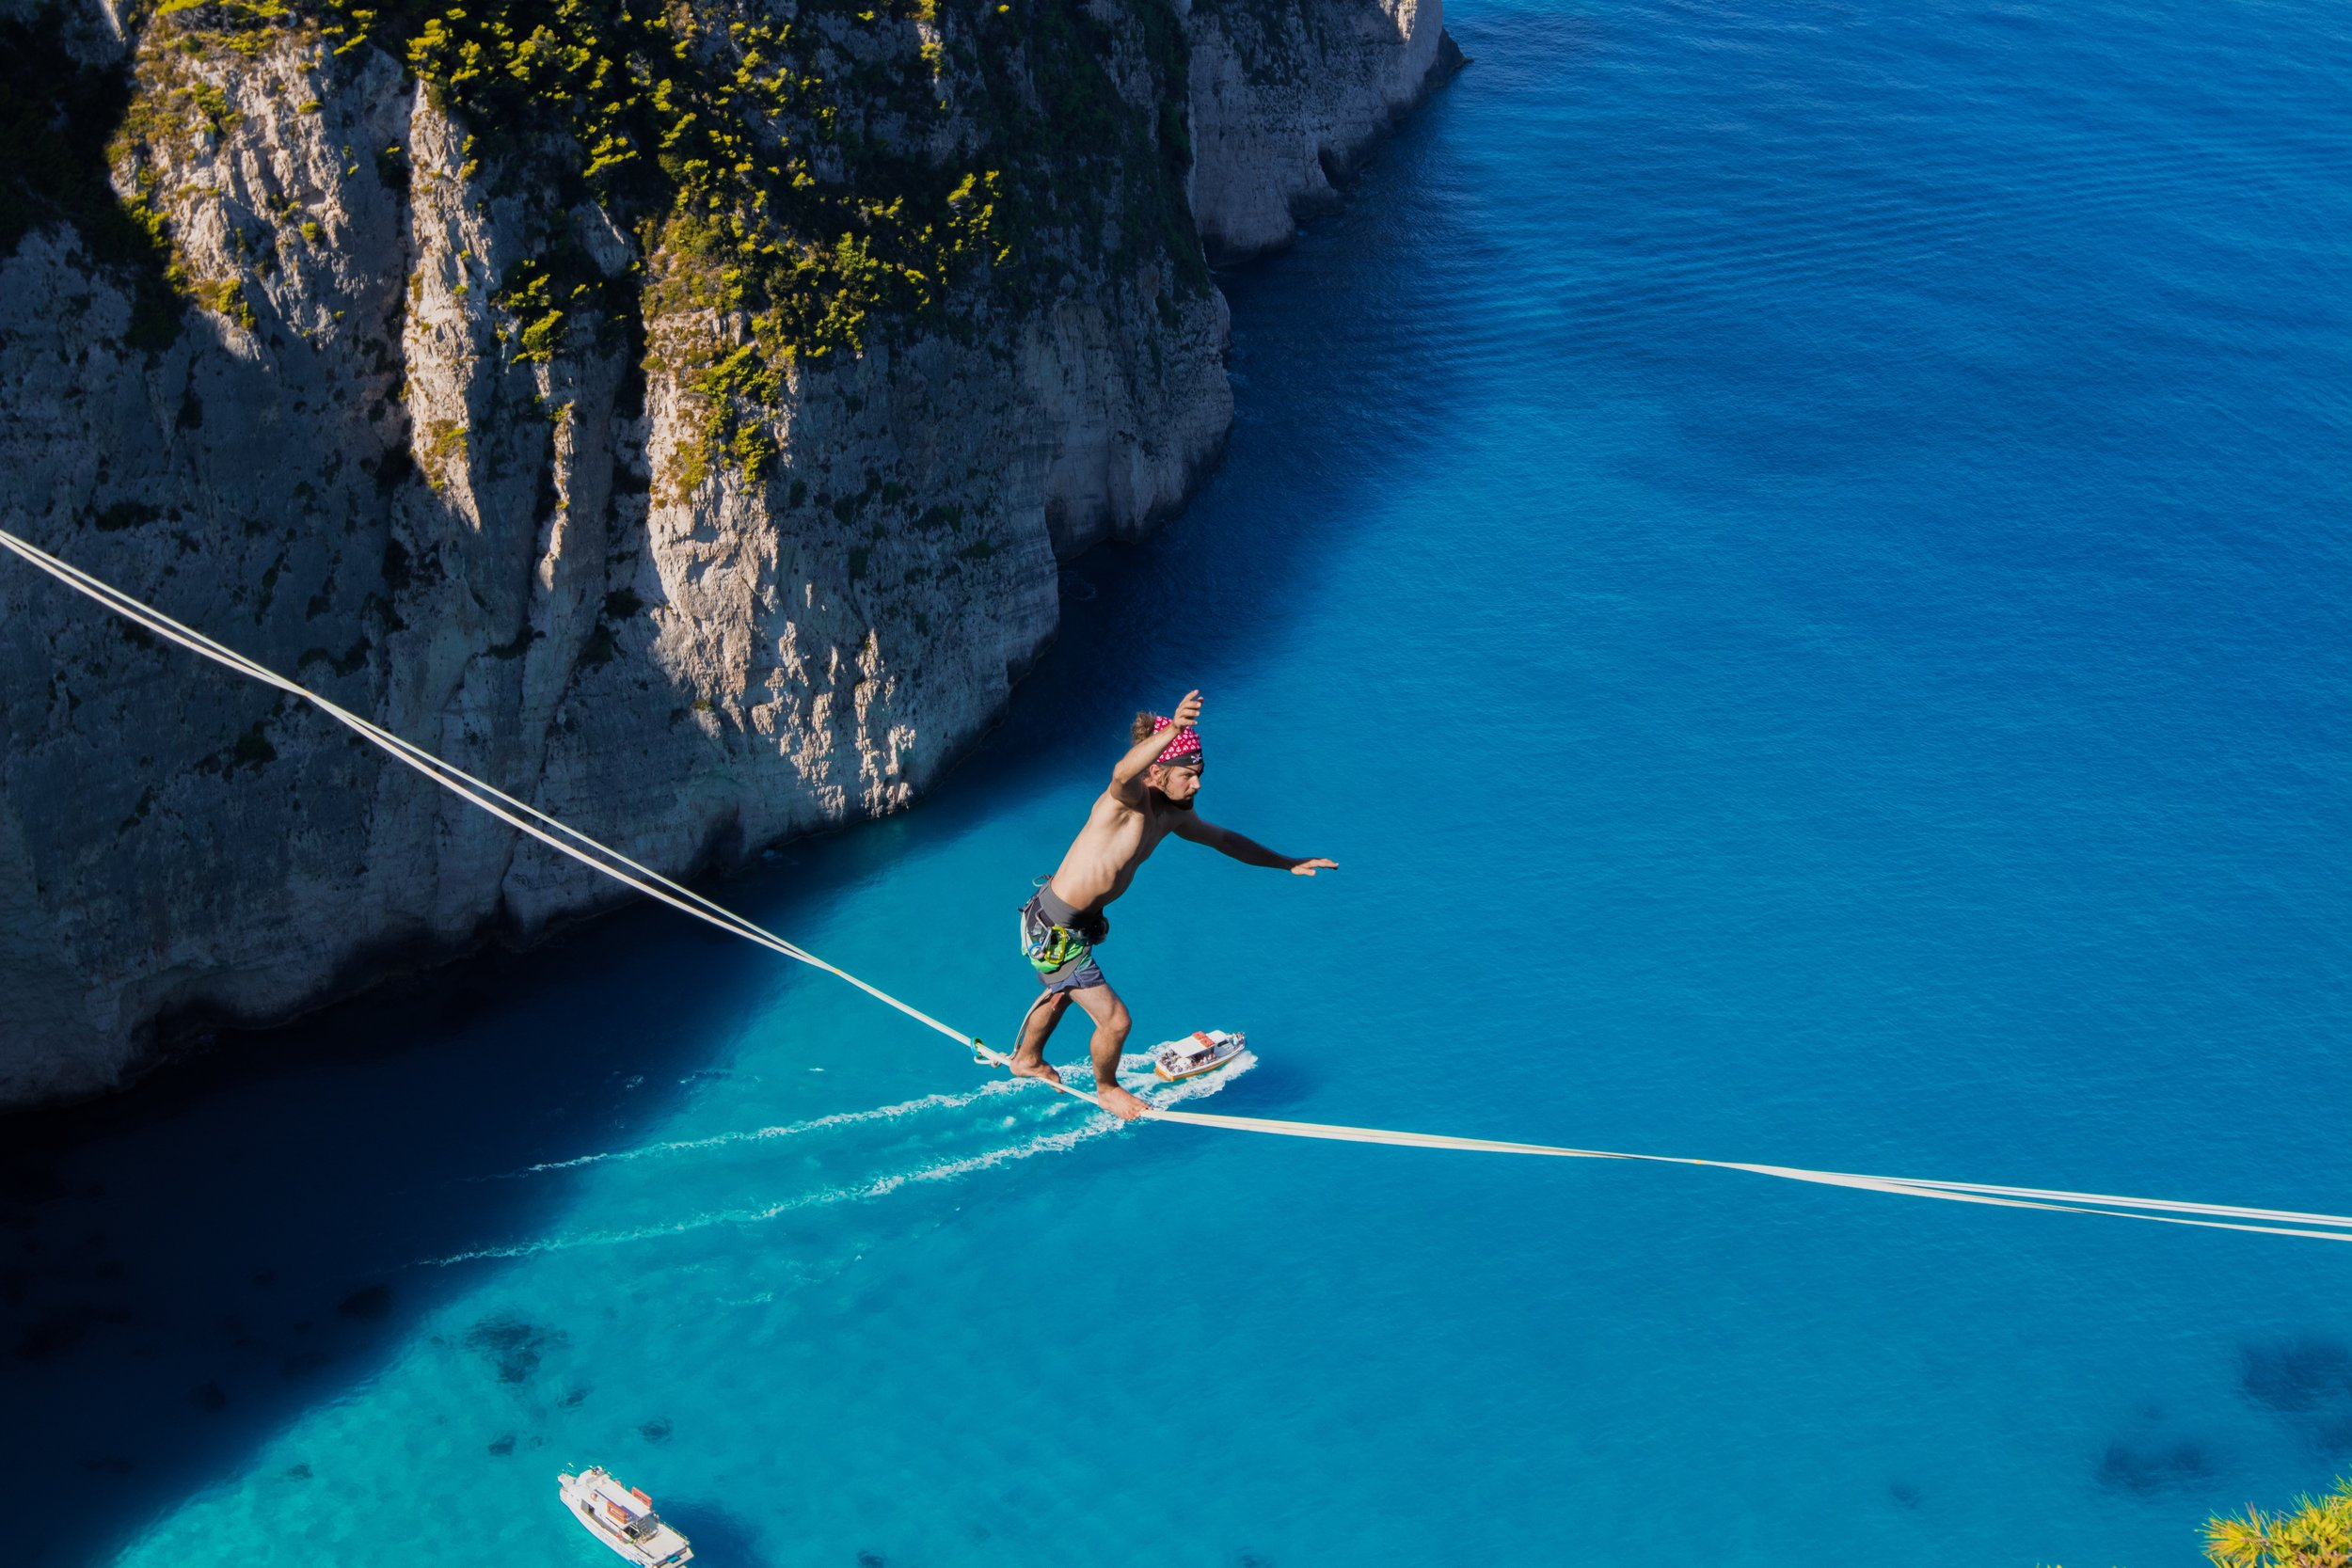 zakinthos greece navagio beach most beautiful paradise Slackline Lyell Grunberg show performance spectacle Highline trickline (1).JPG